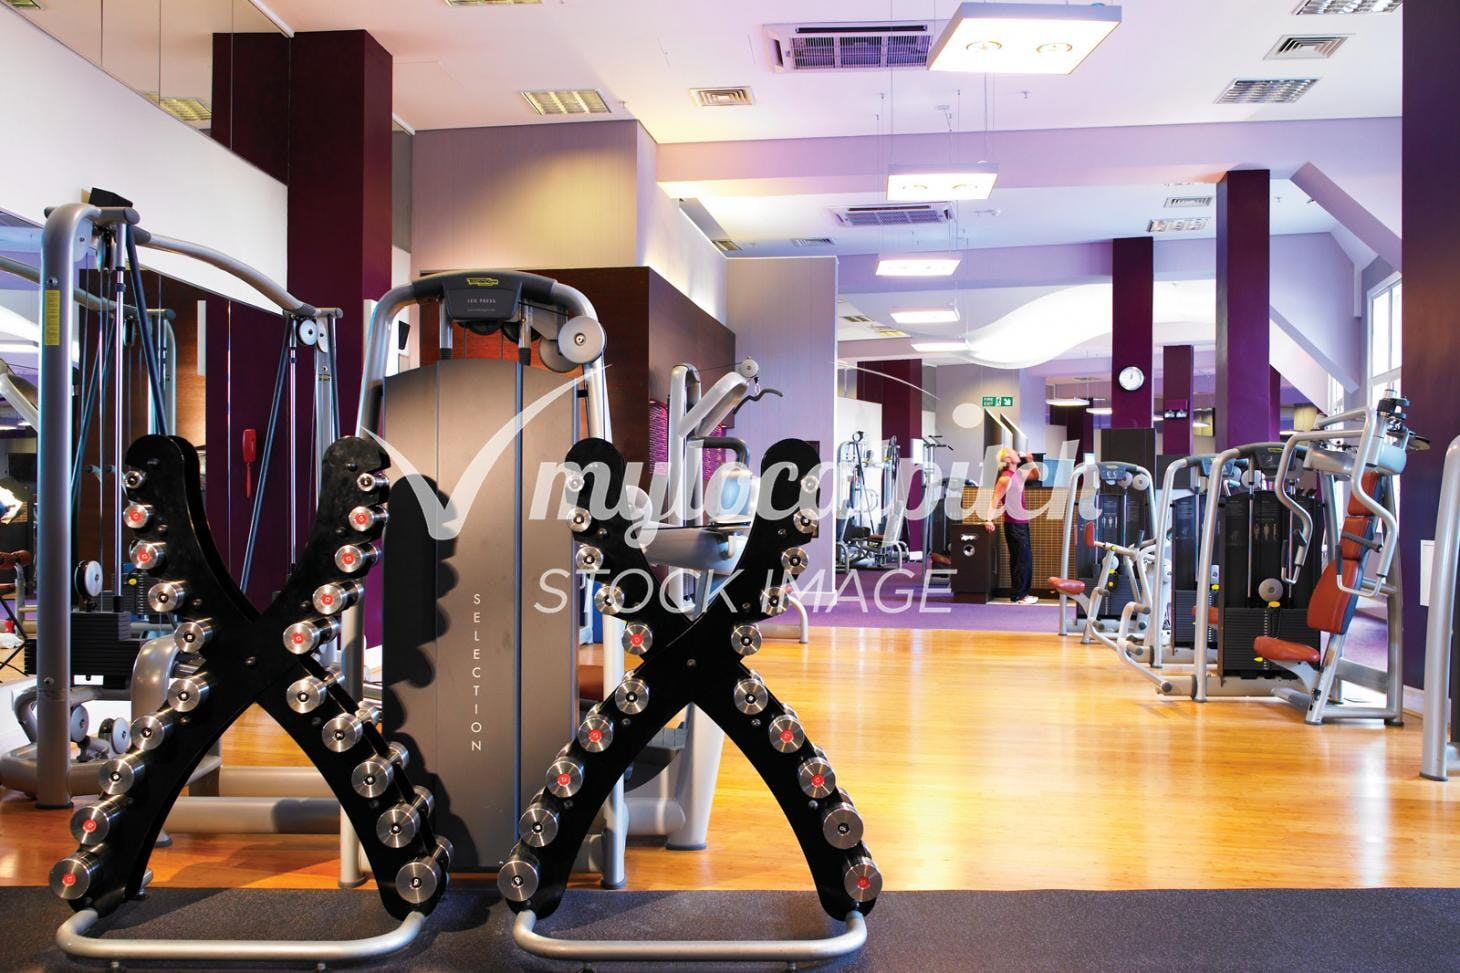 Bannatyne's Health Club Luton Gym gym